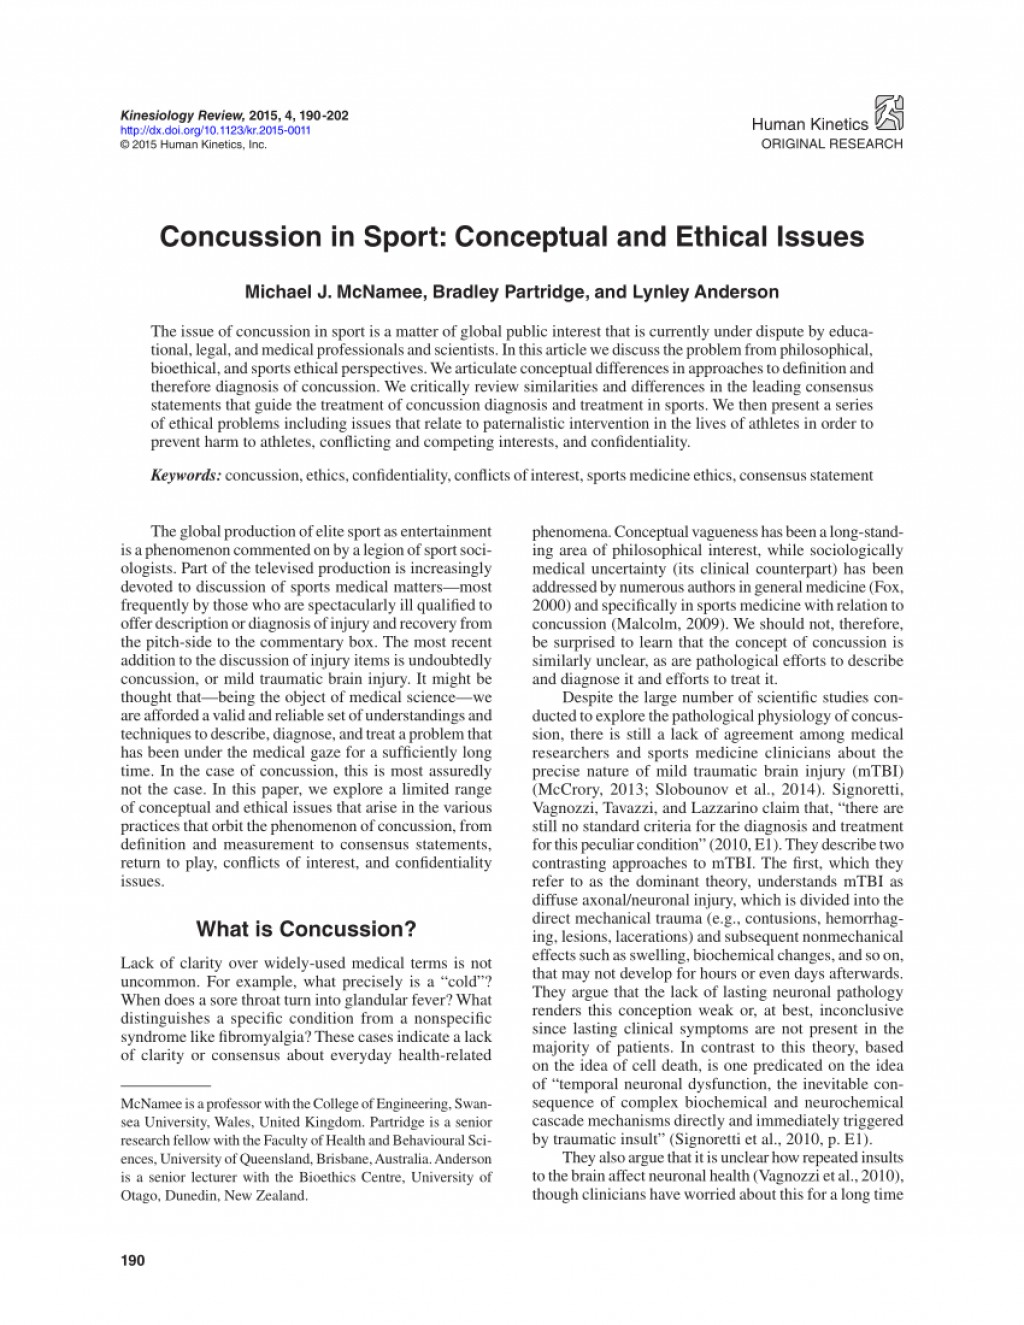 005 Concussion Essay Example Beautiful Outline Examples Conclusion Large